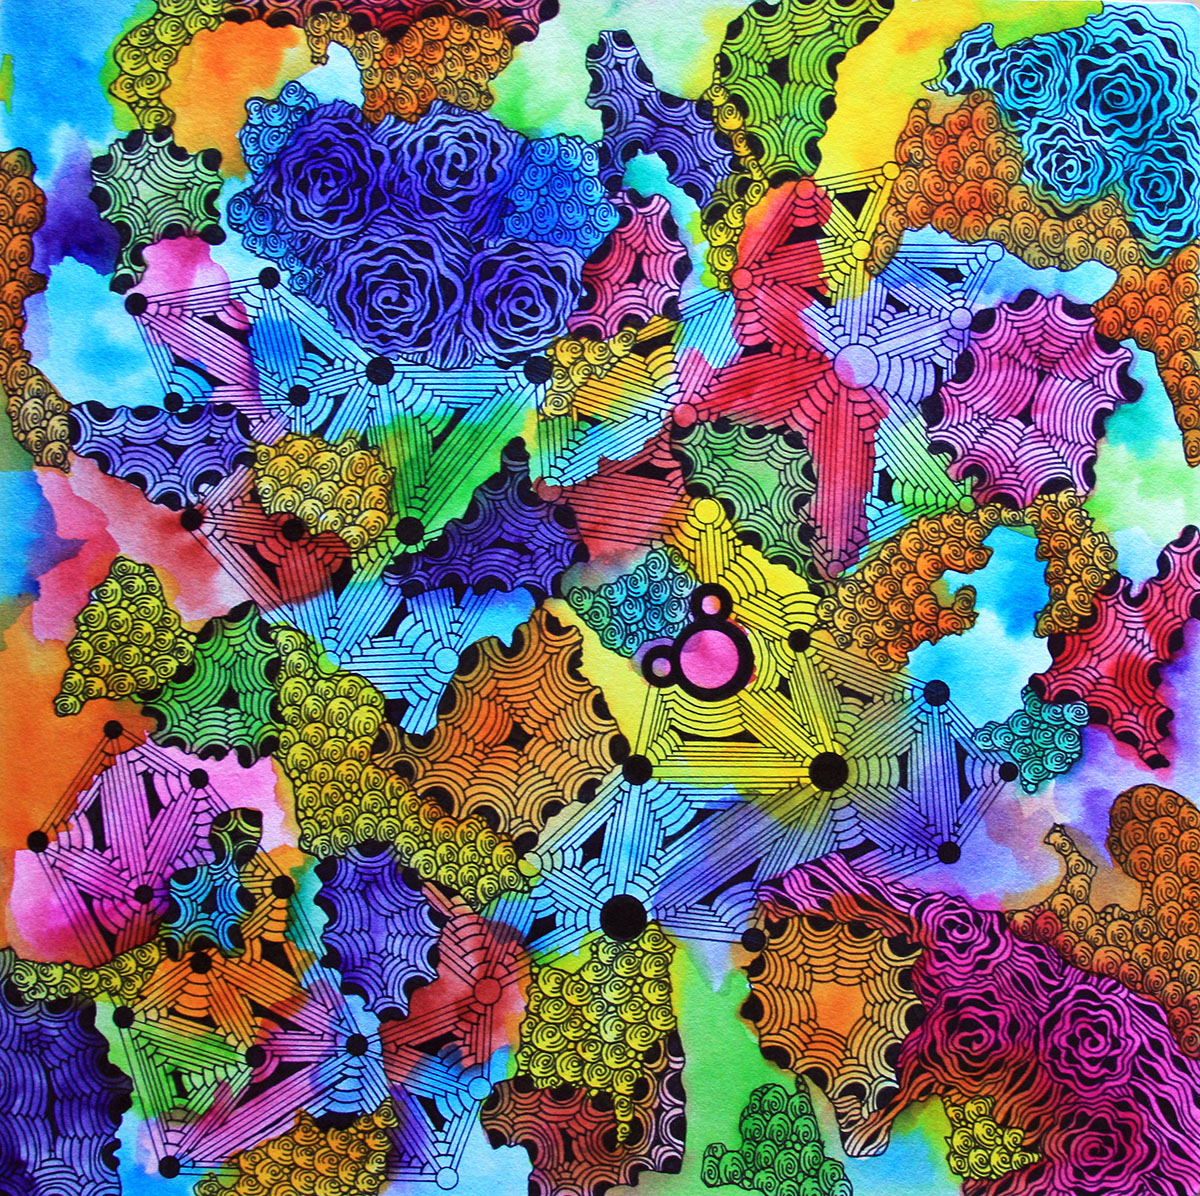 Watercolor Zentangle - Alice Hendon - Doodlewash